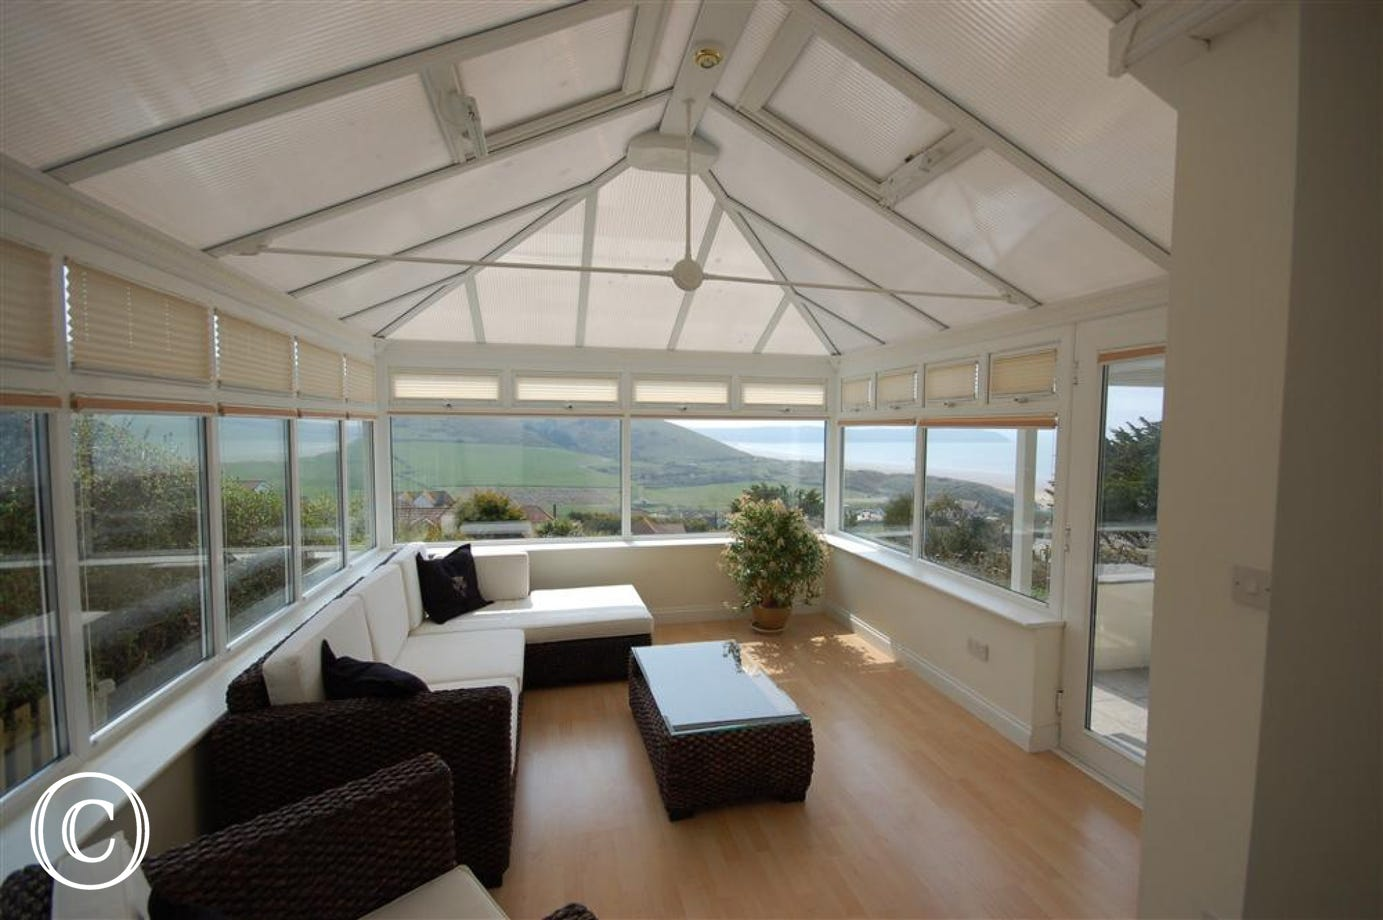 A beautiful conservatory, leading off one of the twin rooms, opens onto the mature landscaped gardens